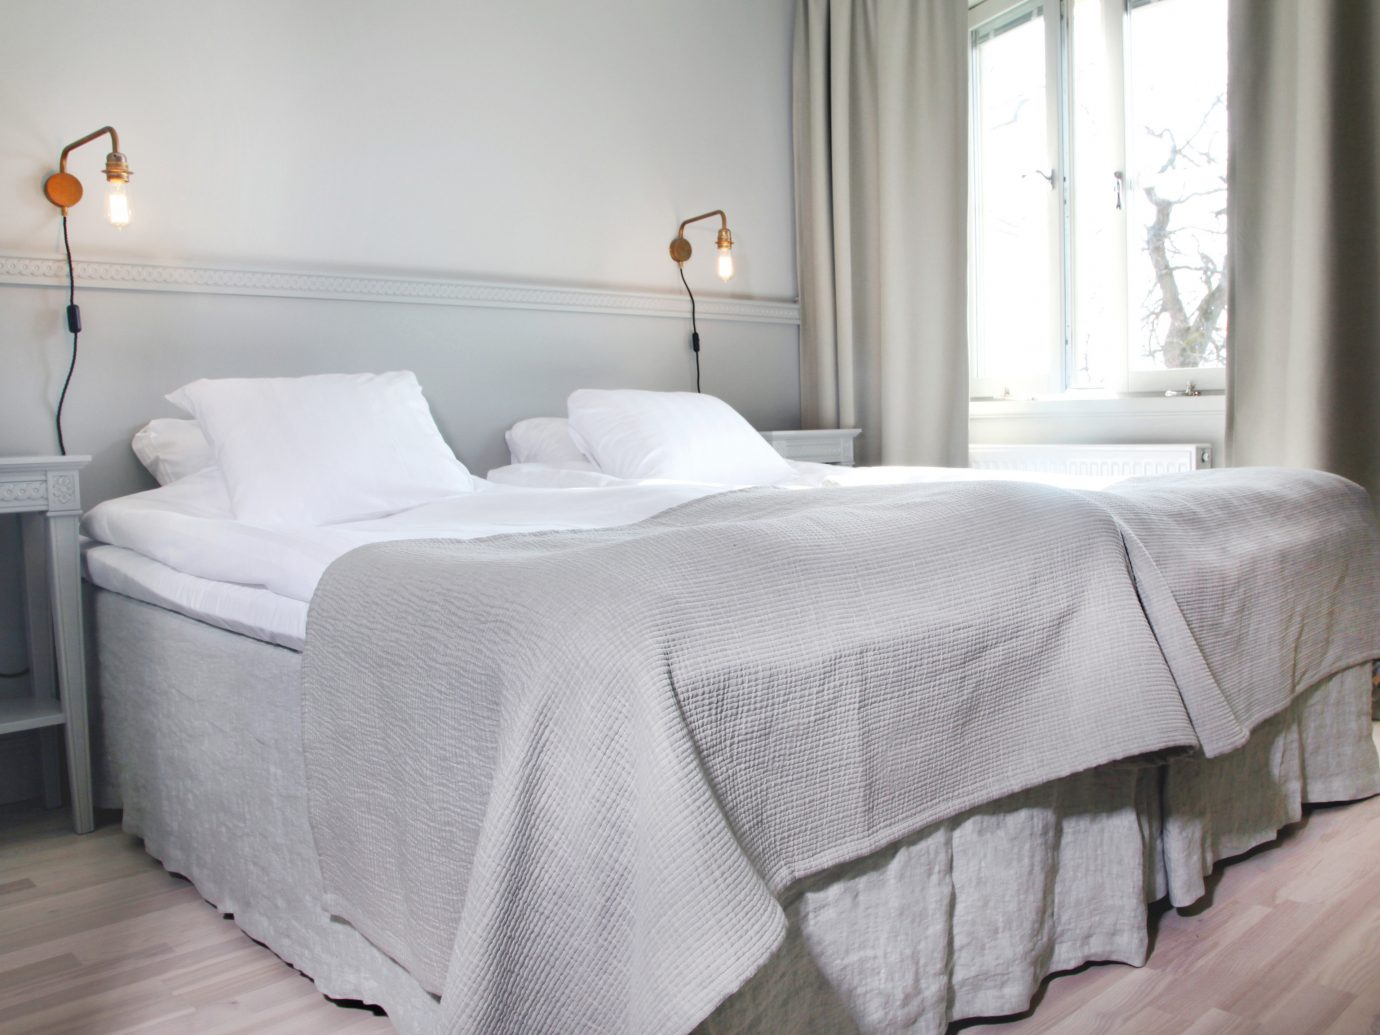 Denmark Finland Hotels Landmarks Luxury Travel Sweden indoor bed wall floor window room bed frame Bedroom hotel furniture mattress product home bed sheet bedding textile duvet cover interior design Suite linens flooring mattress pad comfort lamp